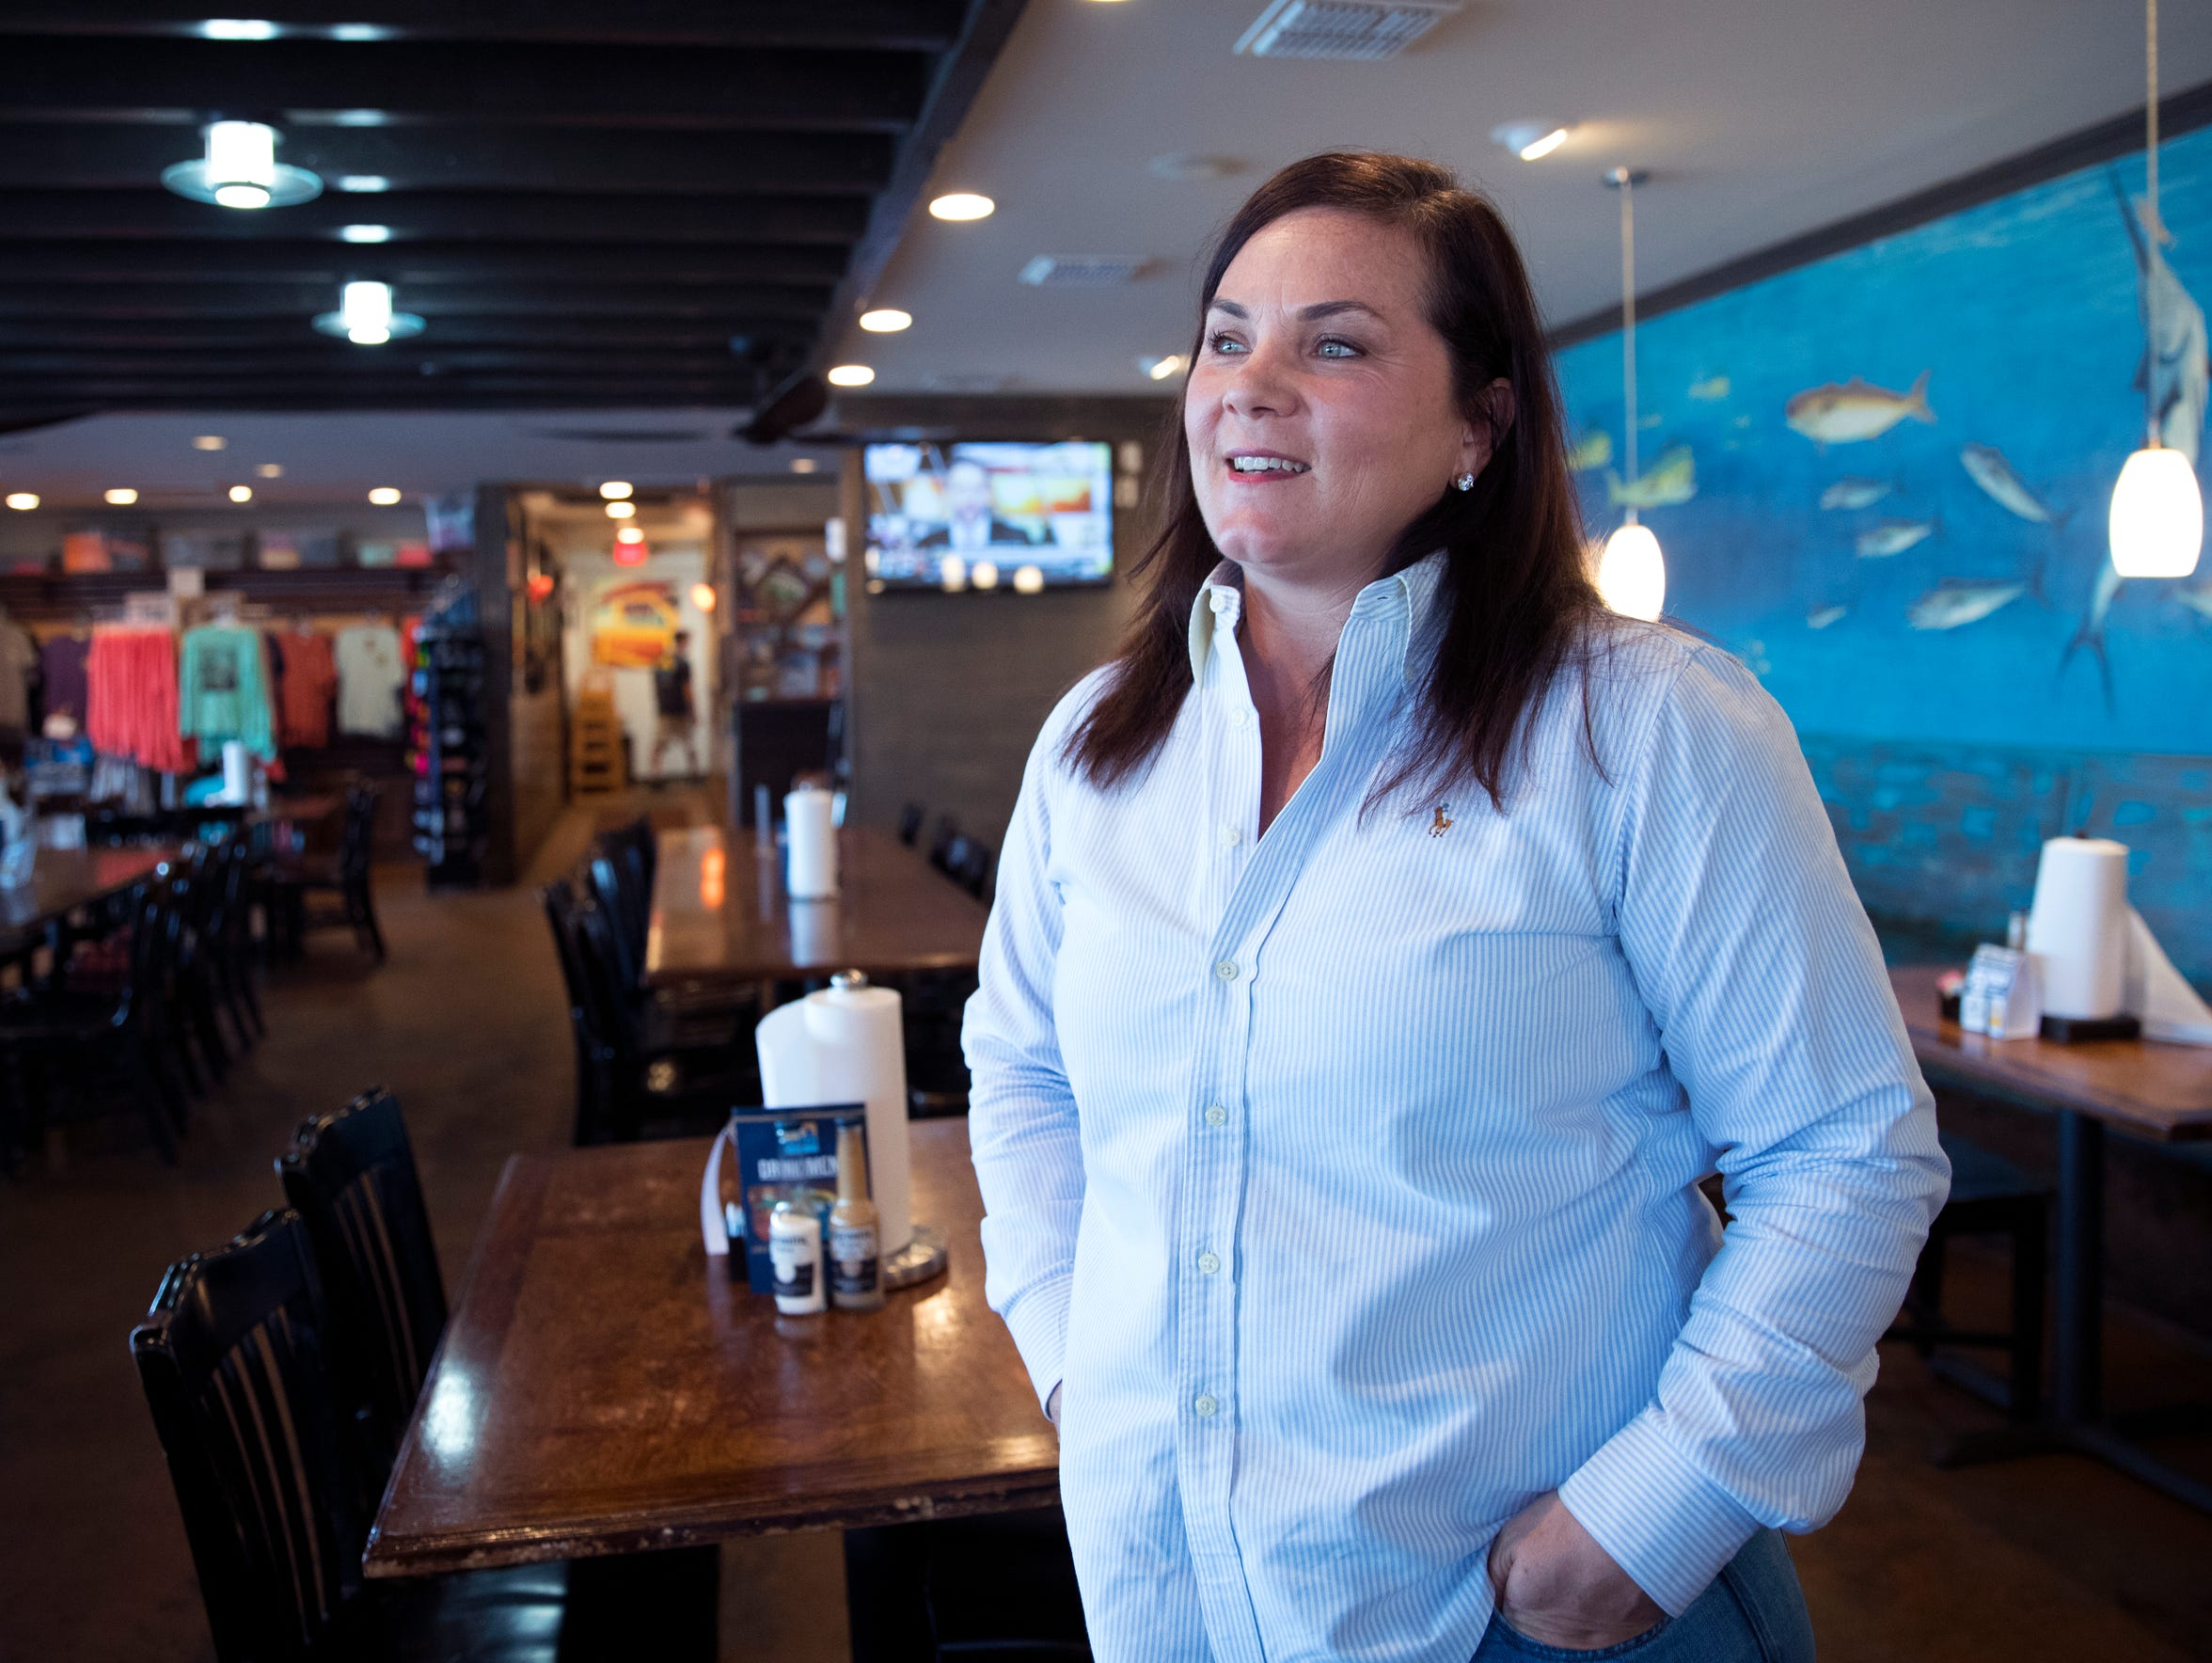 Beth Owens owns several restaurants, bars and fishing